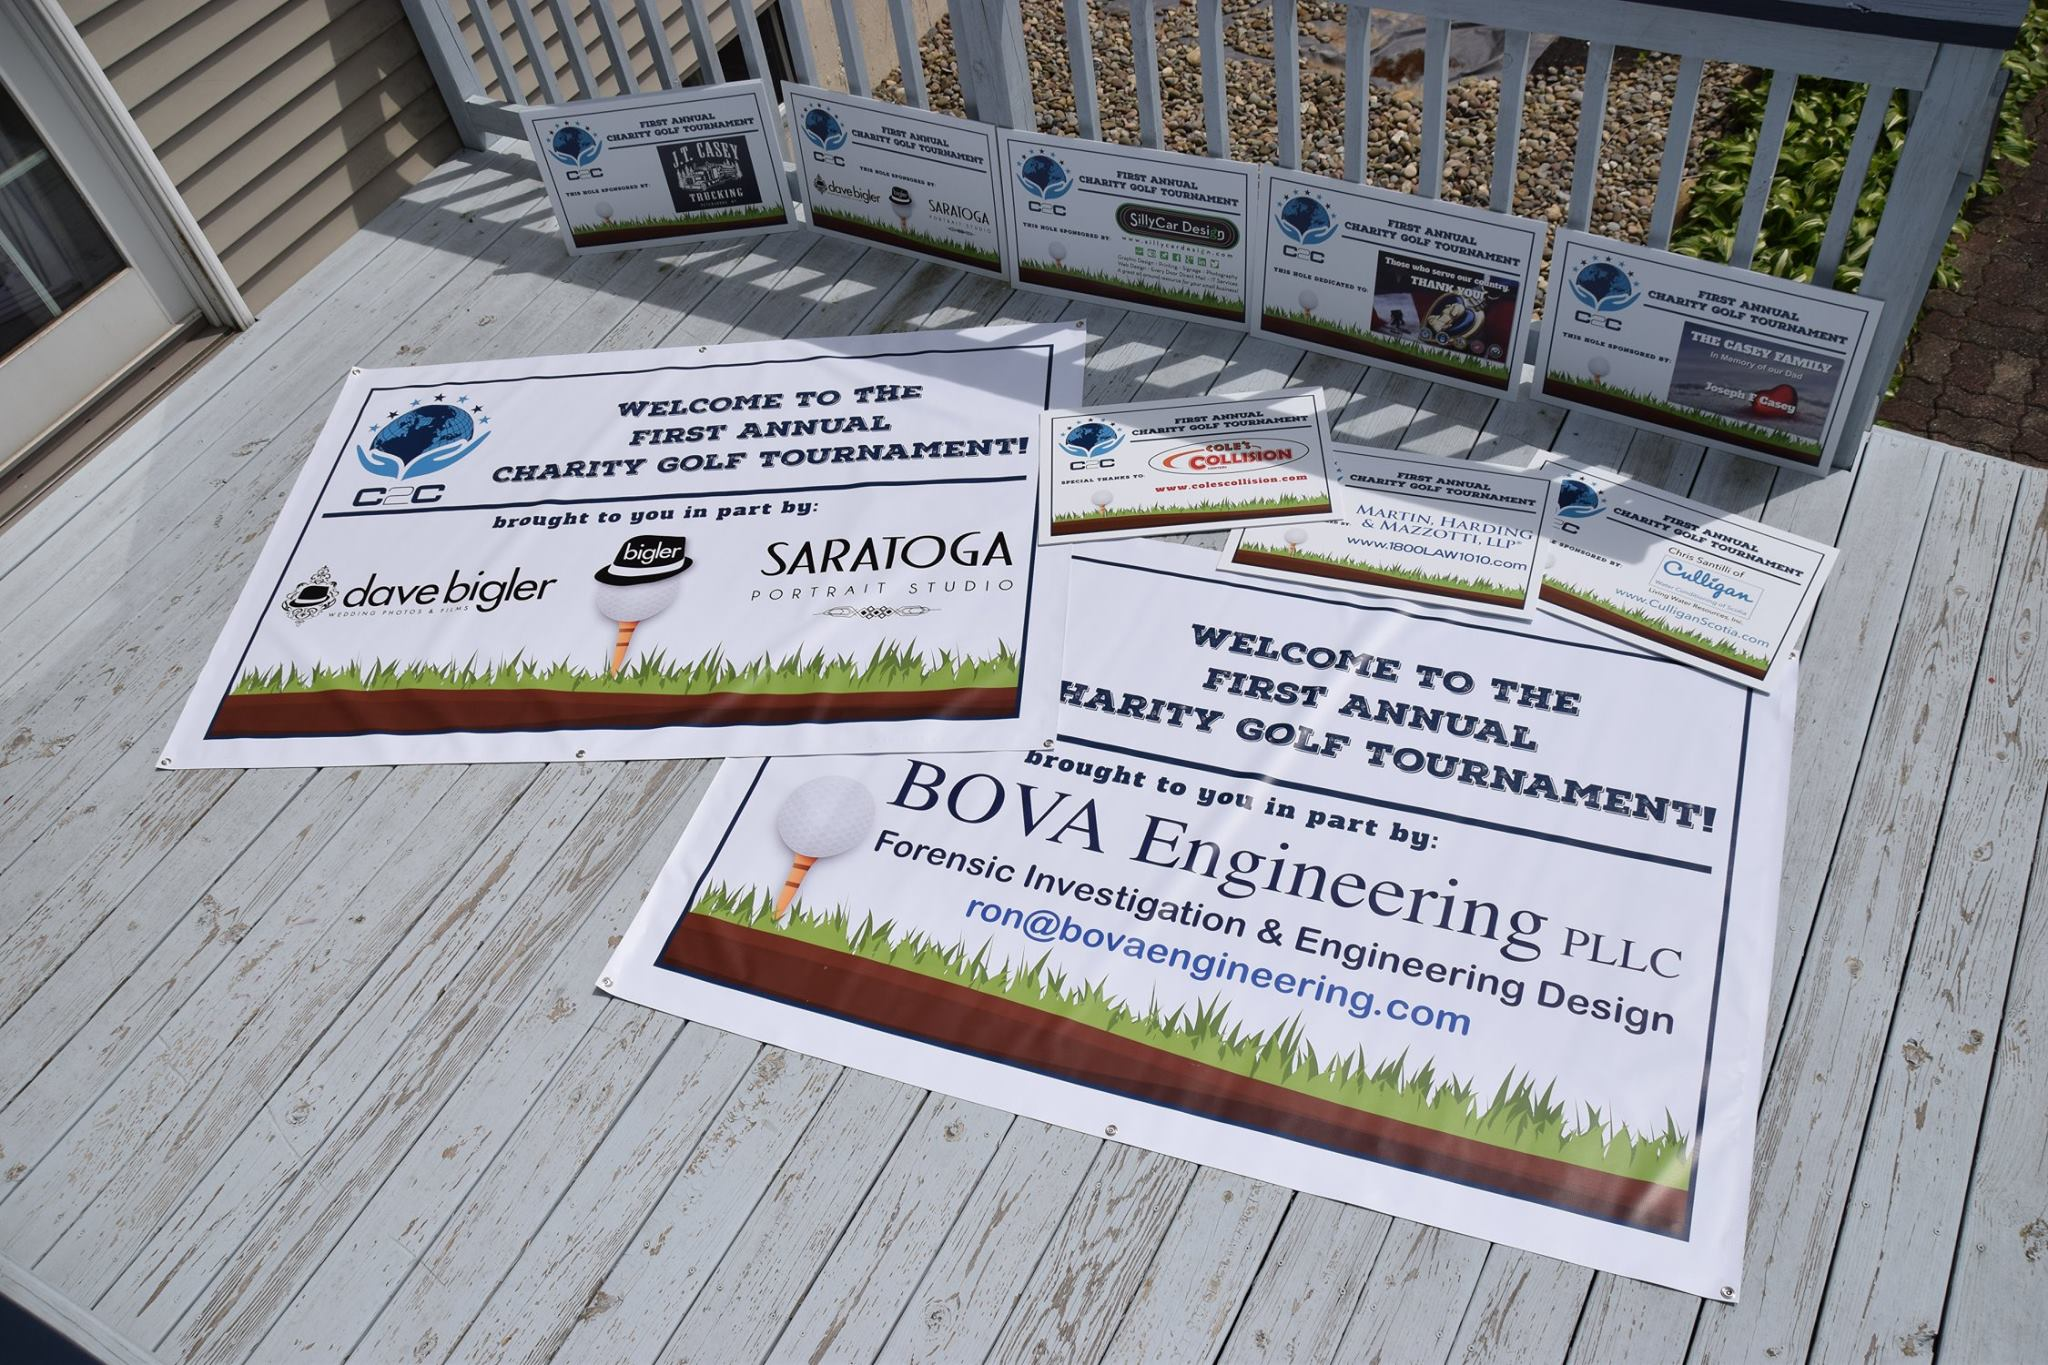 Photo of several tee signs and banners created for C2C first annual charity golf tournament.